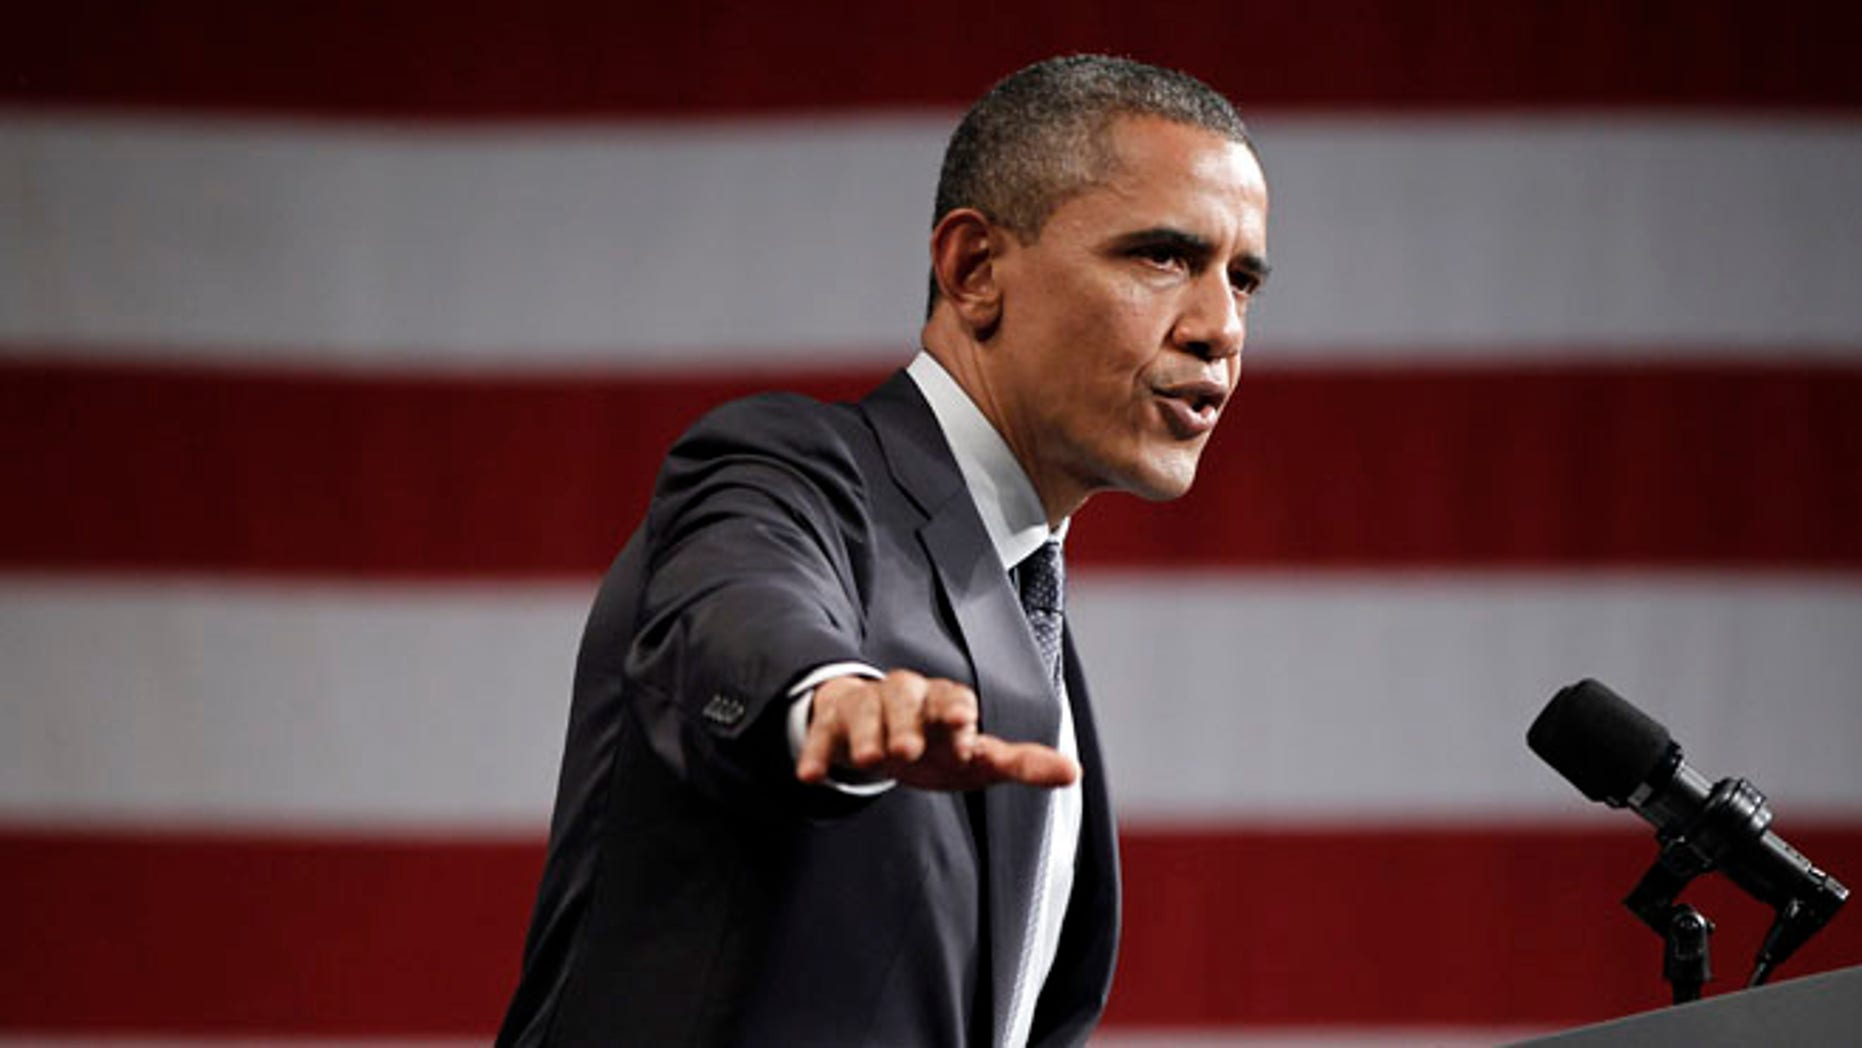 May 23, 2012: President Obama speaks to supporters at a campaign fundraiser in Denver.